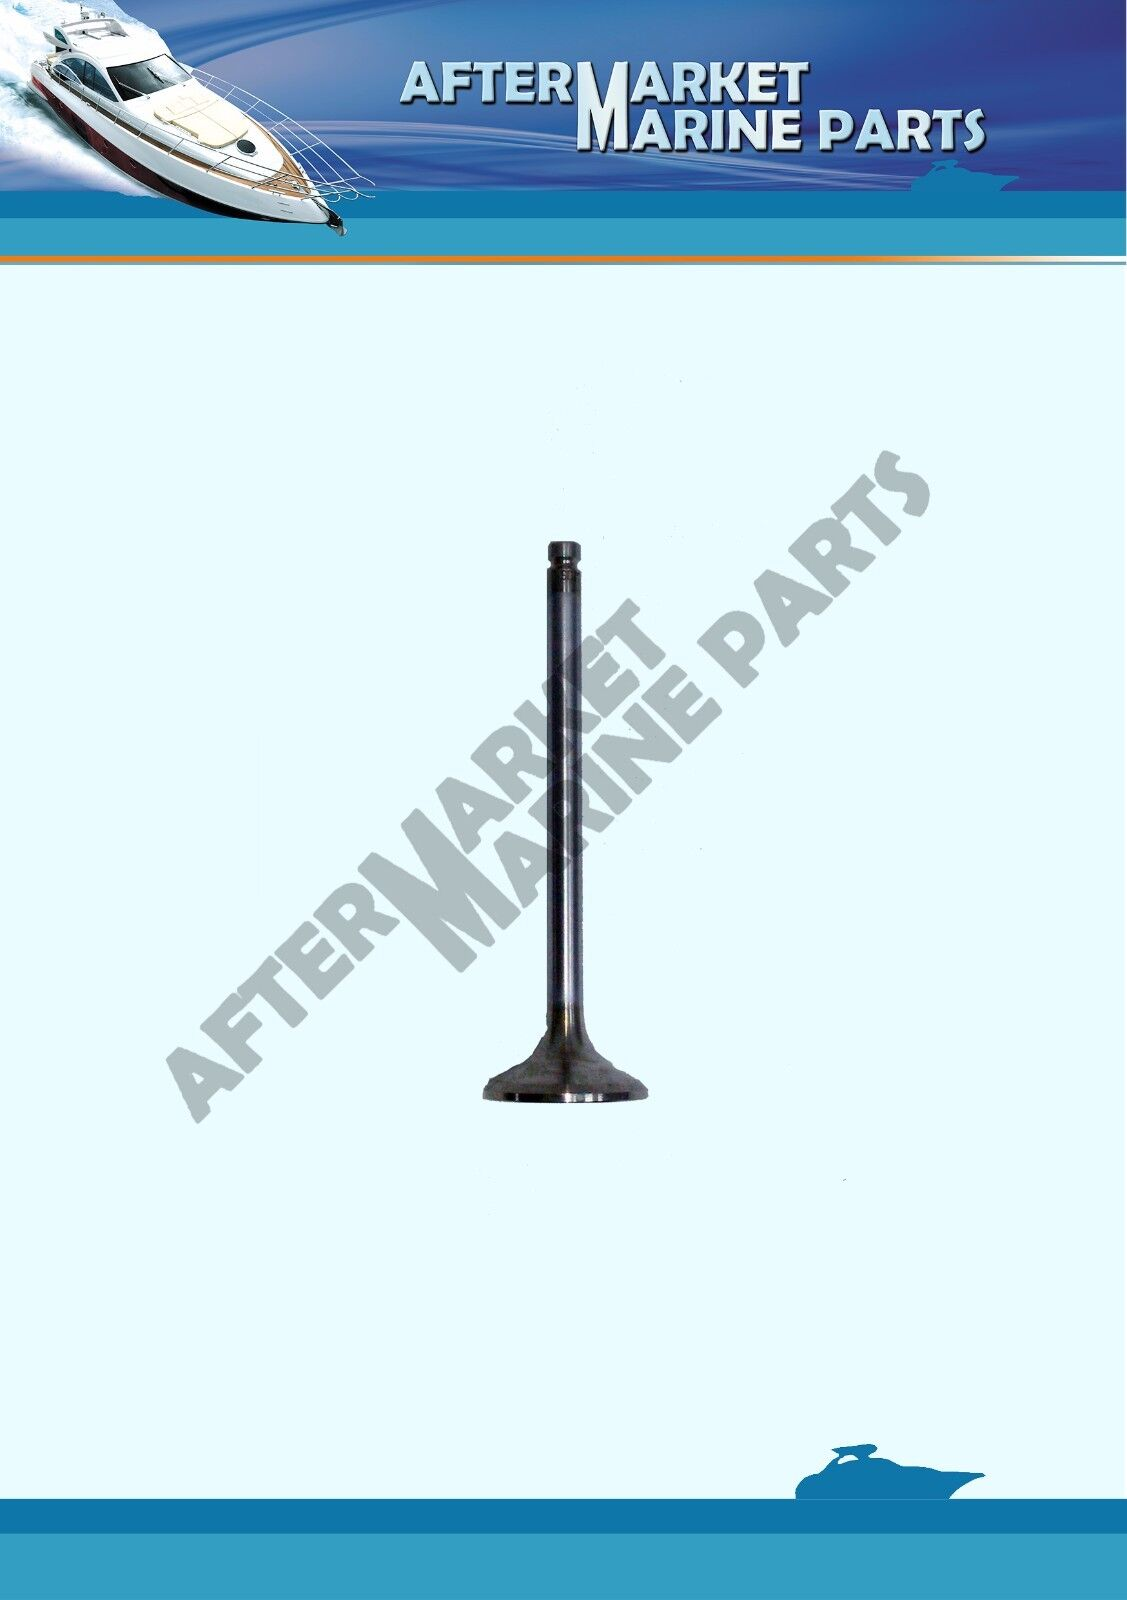 Volvo Penta Exhaust Valve Inboard Diesel Engine Replaces 838638 For AD TAMD KAD